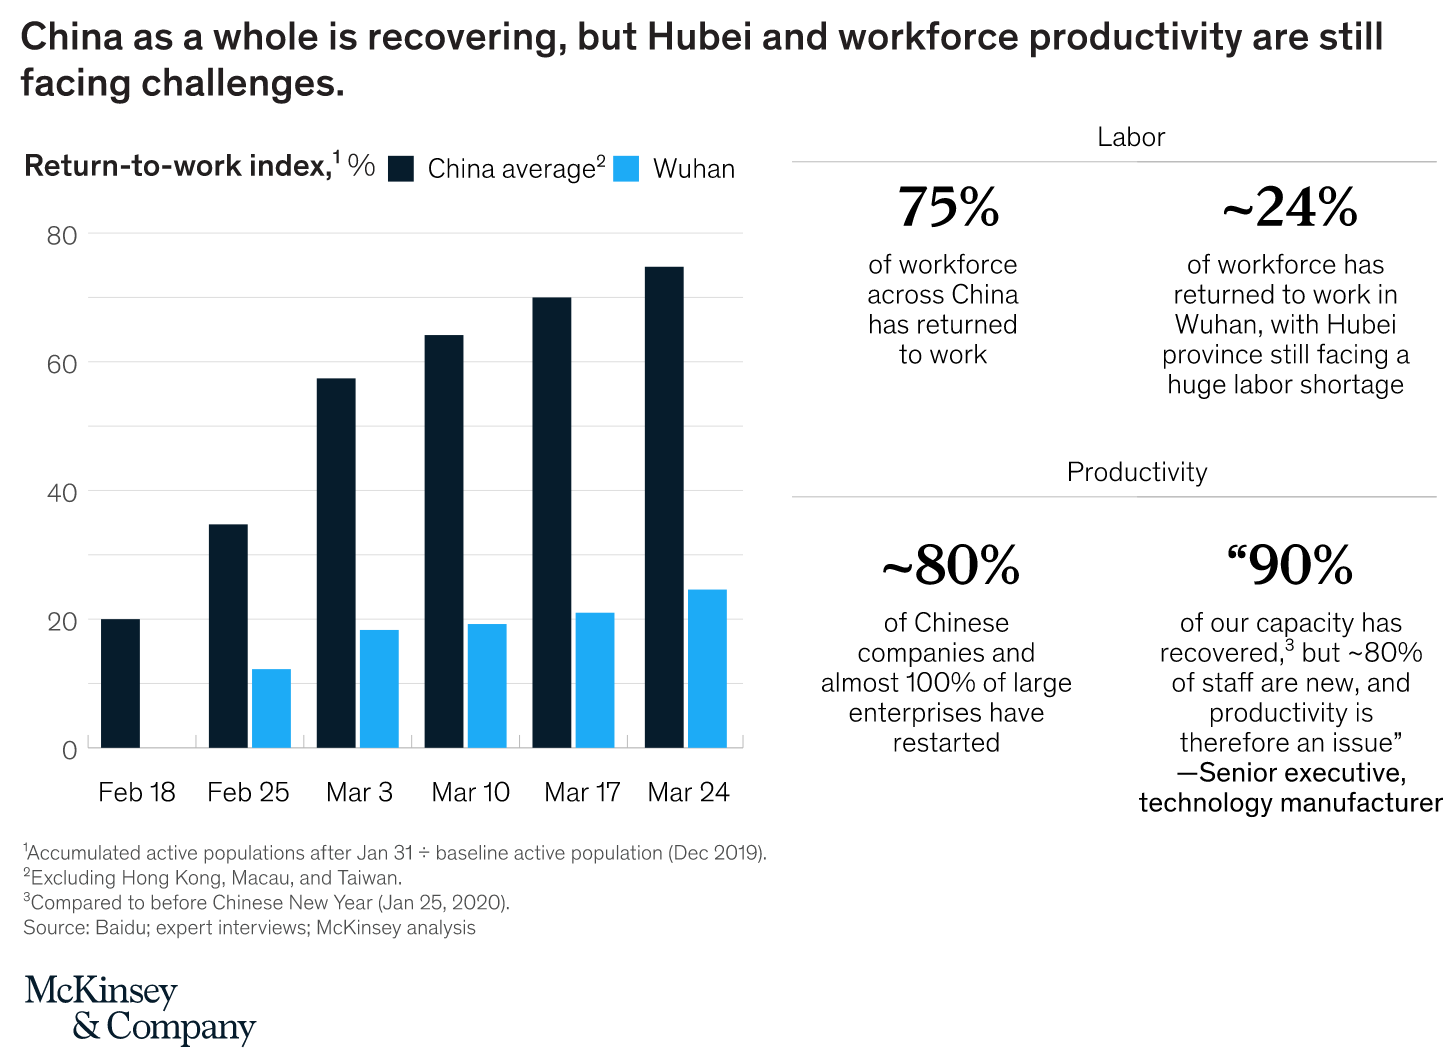 China as a whole is recovering, but Hubei and workforce productivity are still facing challenges.